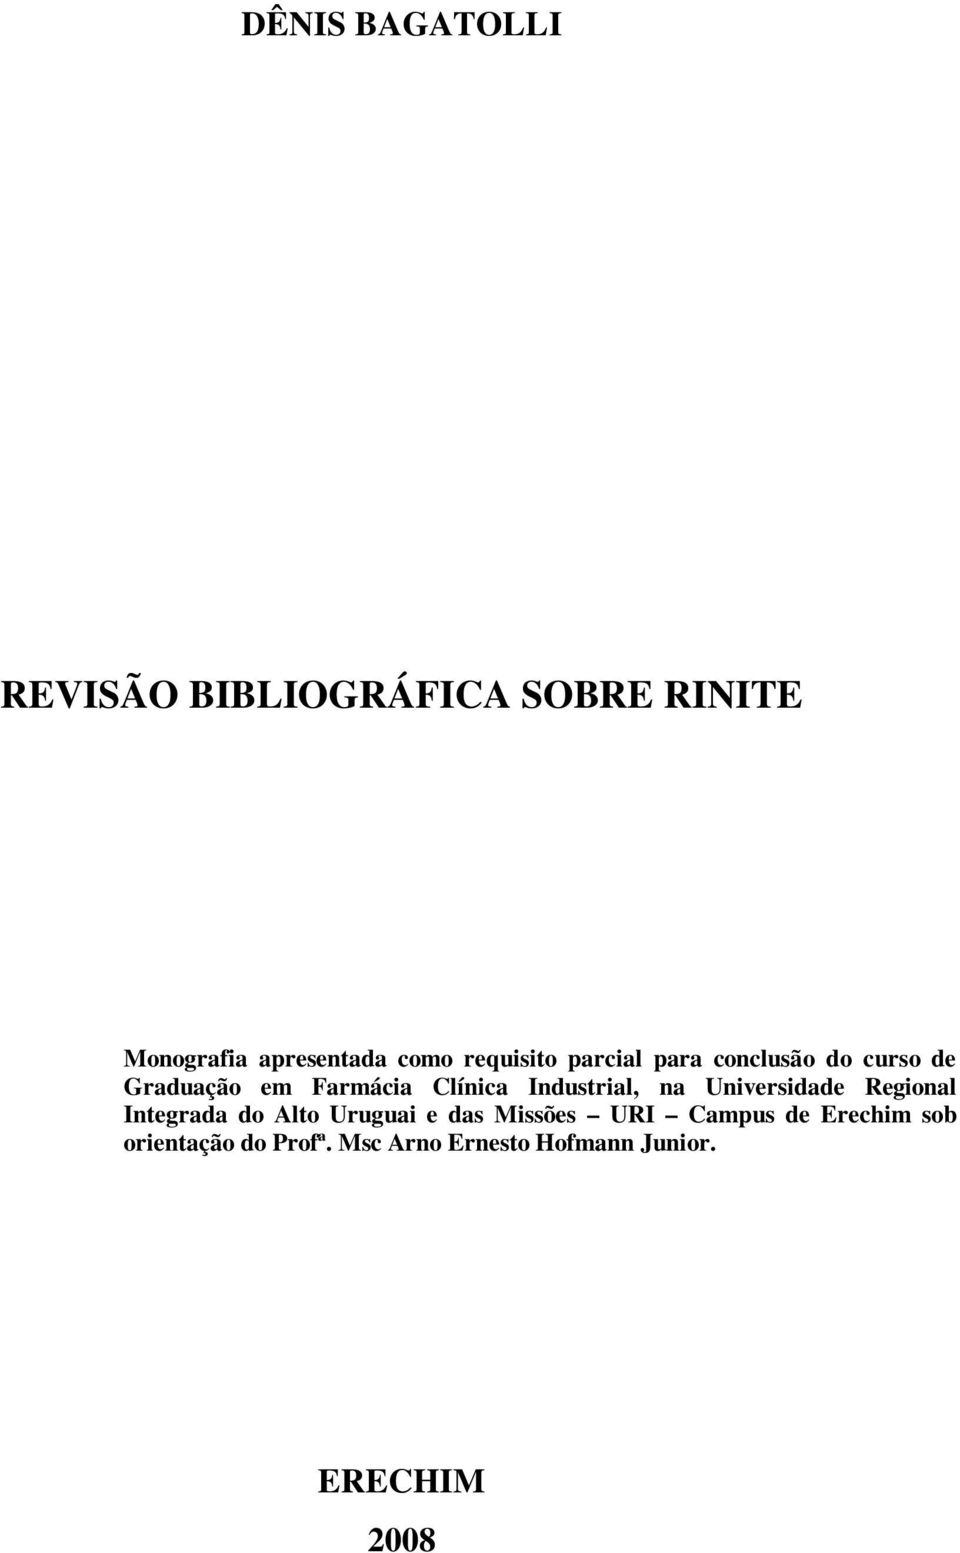 Industrial, na Universidade Regional Integrada do Alto Uruguai e das Missões URI